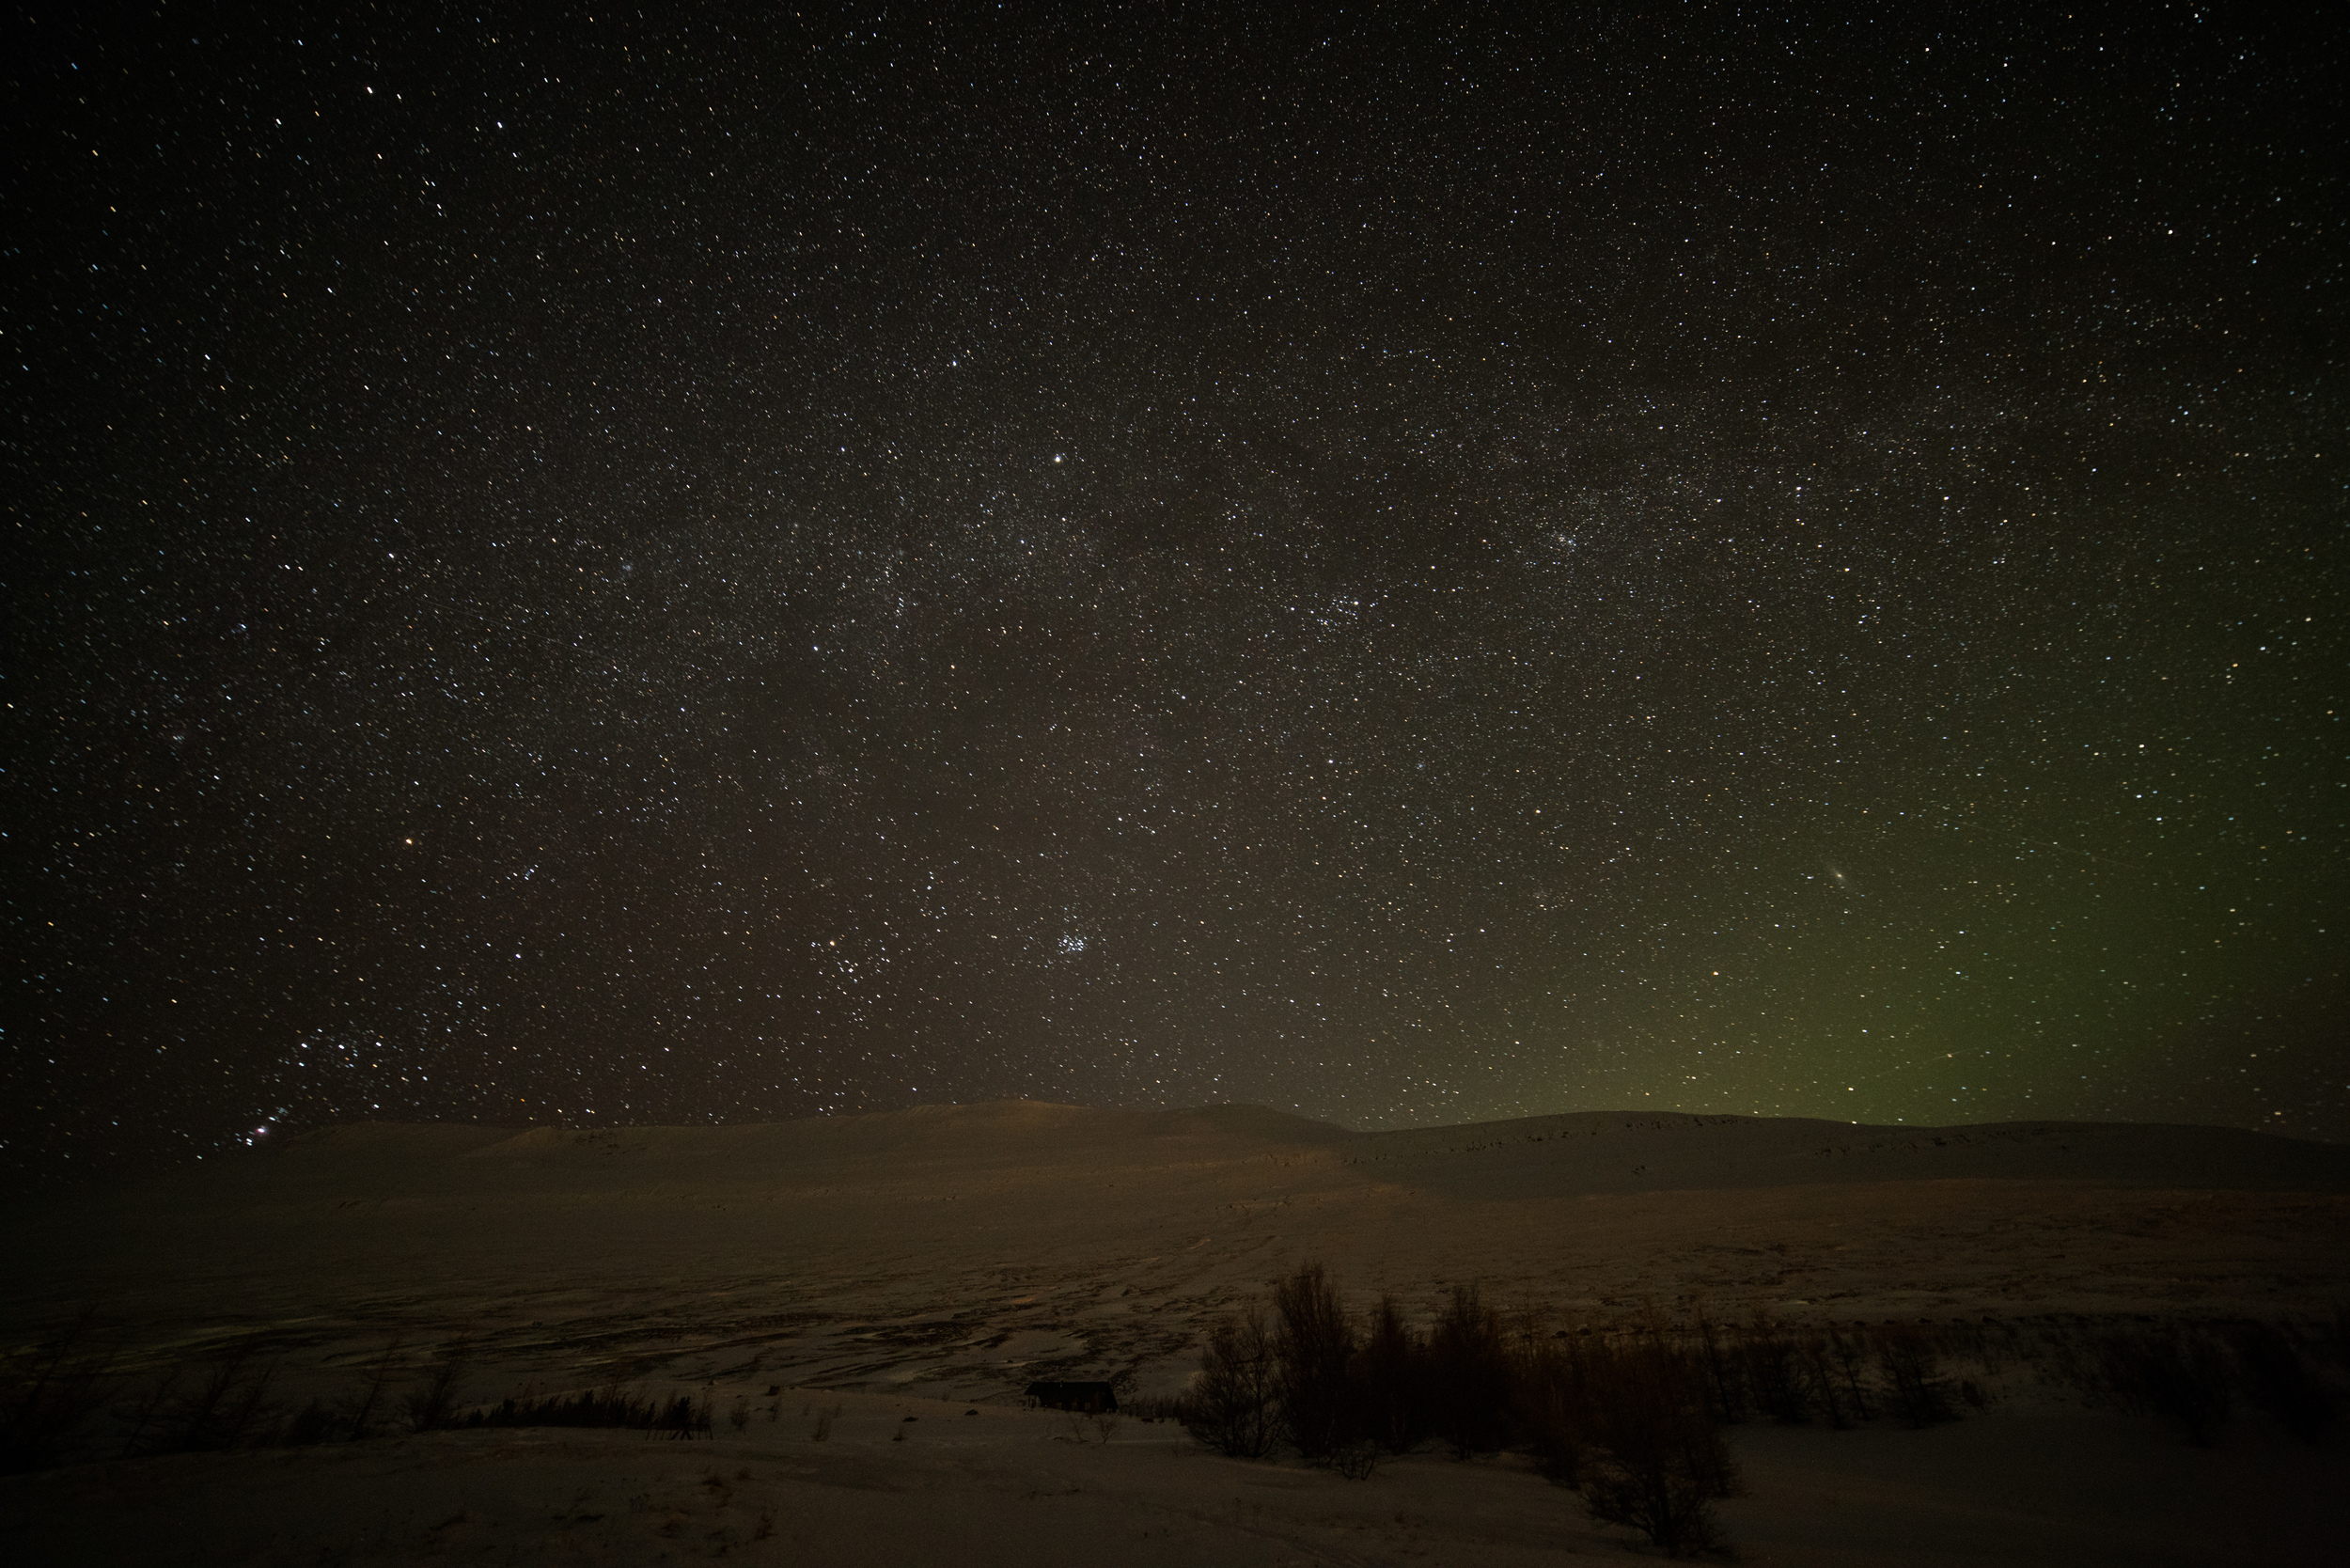 Shooting west from south of Akureyri. March 2, 2016. Sony A7rII with Rokinon 14mm f/2.8, ISO 3200, 30s.